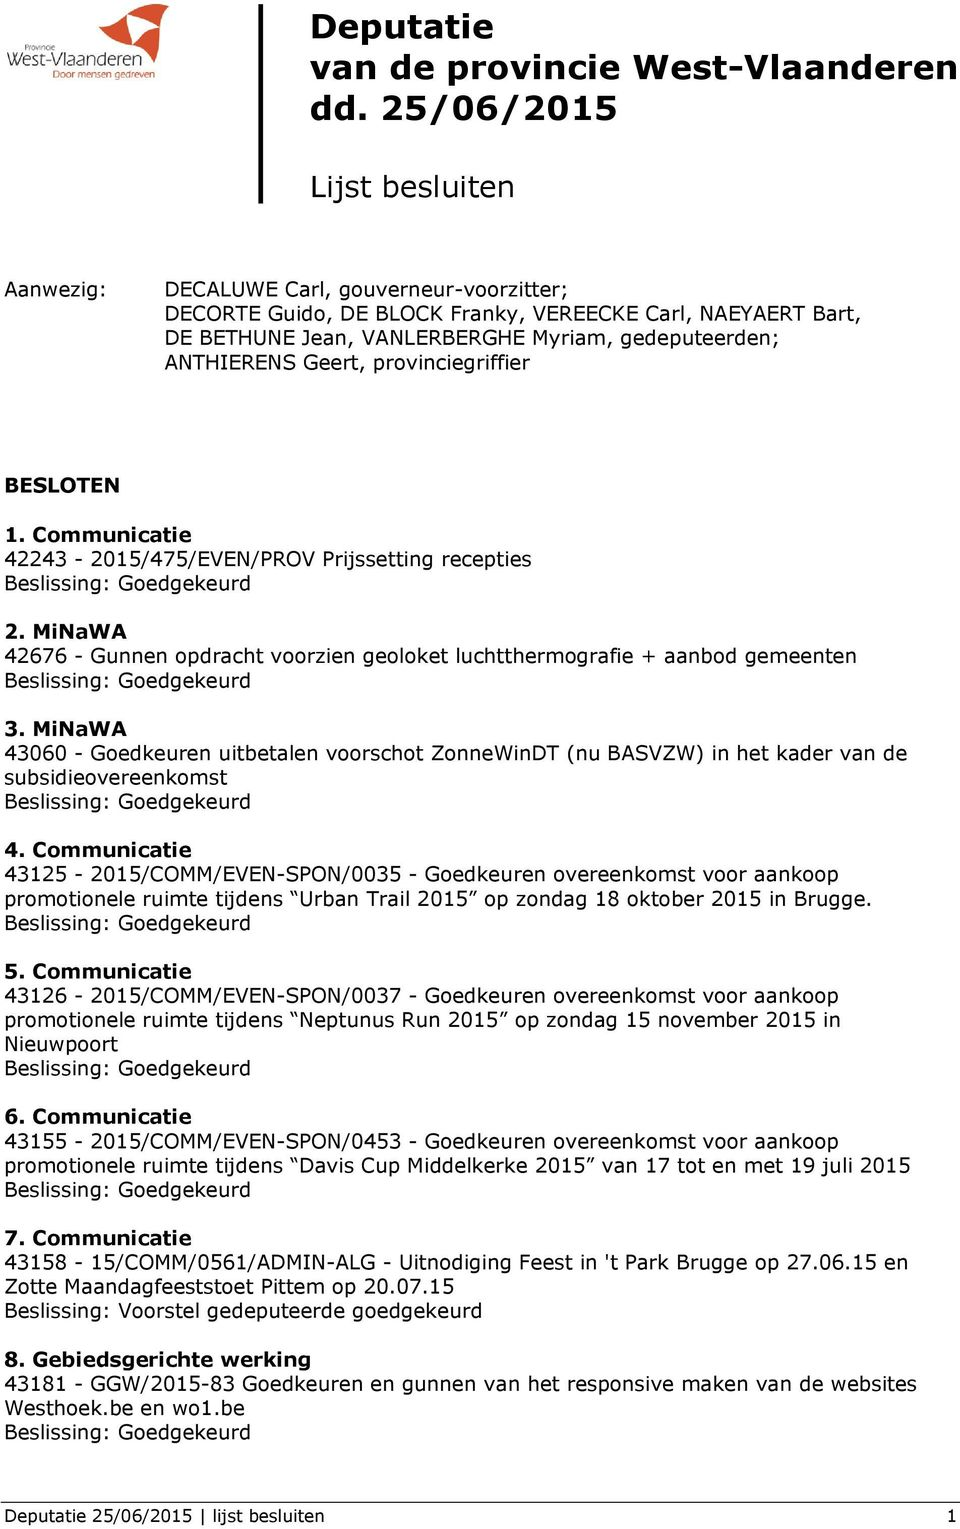 ANTHIERENS Geert, provinciegriffier BESLOTEN 1. Communicatie 42243-2015/475/EVEN/PROV Prijssetting recepties 2. MiNaWA 42676 - Gunnen opdracht voorzien geoloket luchtthermografie + aanbod gemeenten 3.